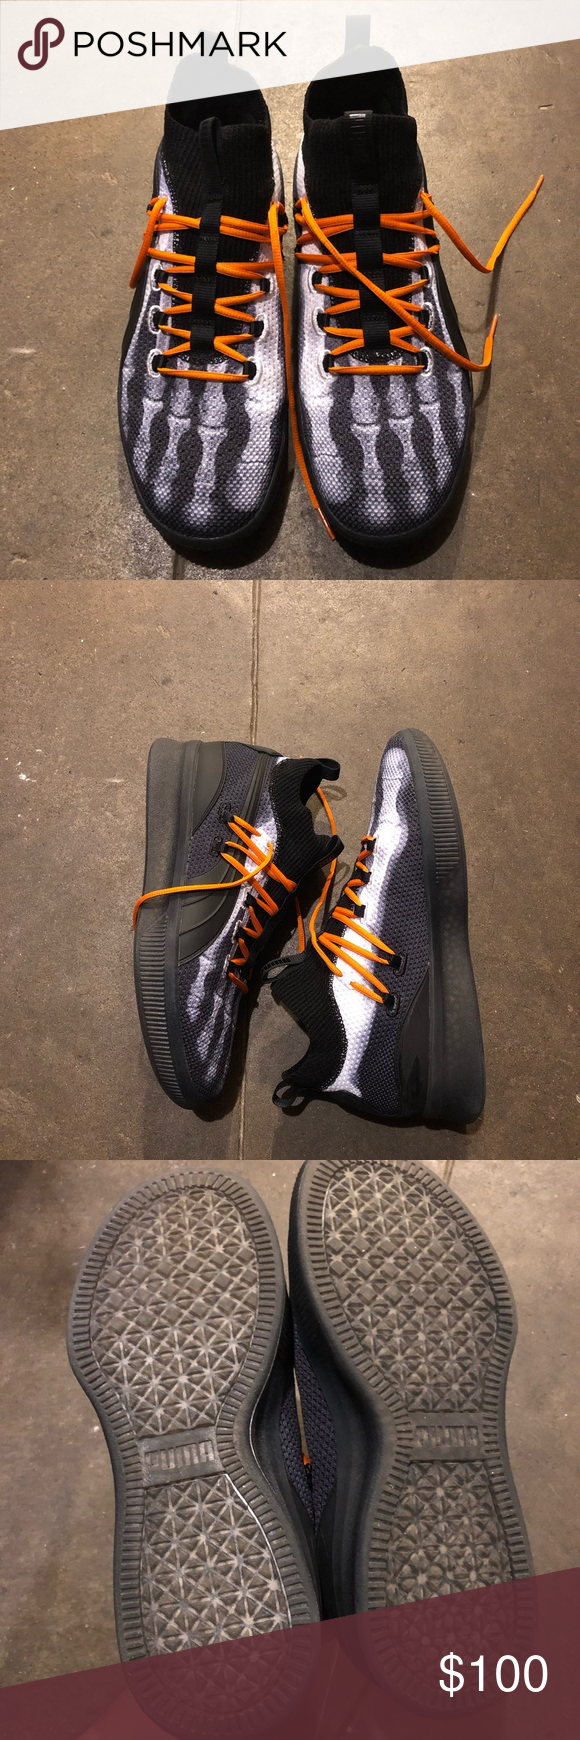 72a7a862932f Puma Clyde Court Disrupt Halloween 10.5 NDS Puma Clyde Ball Shoes in the XRay  colorway.